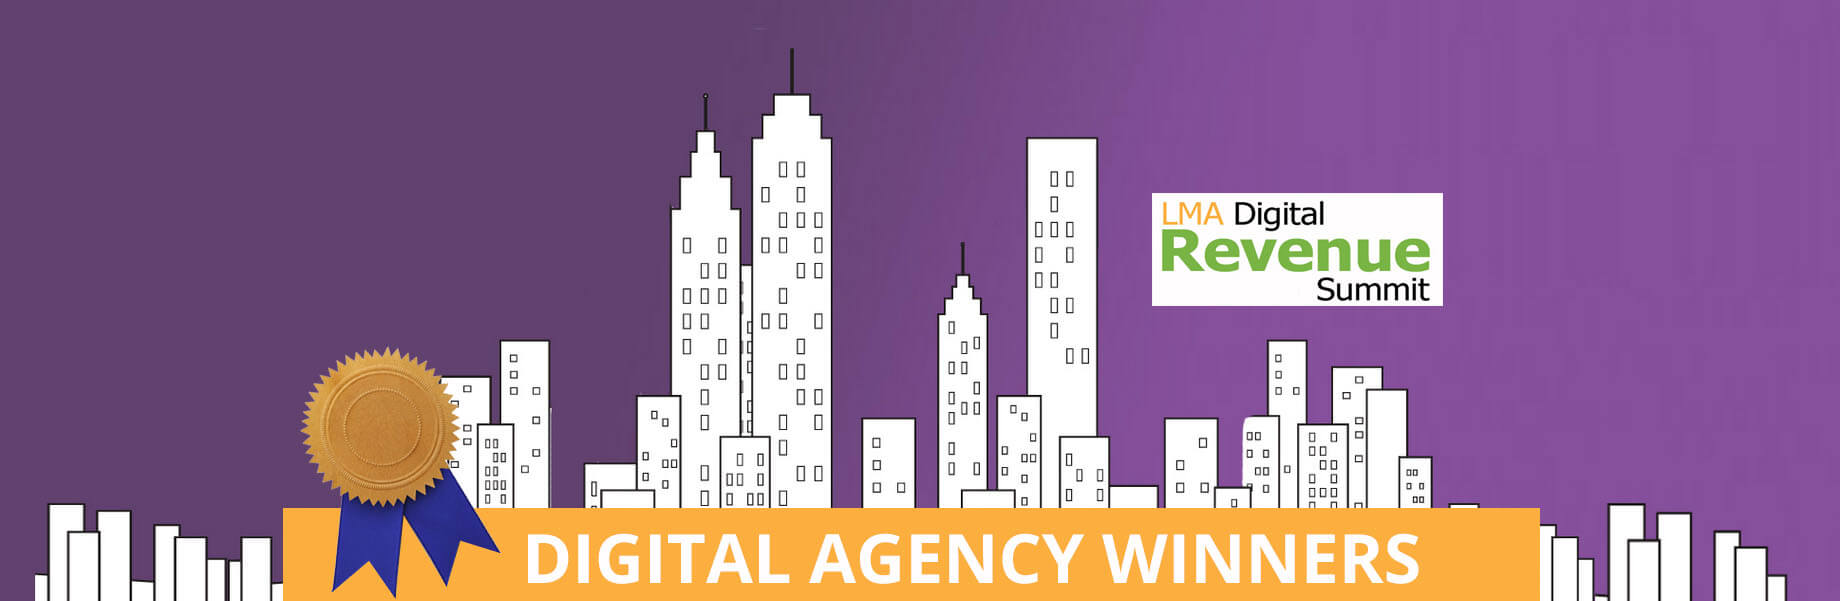 LMA digital agency winner